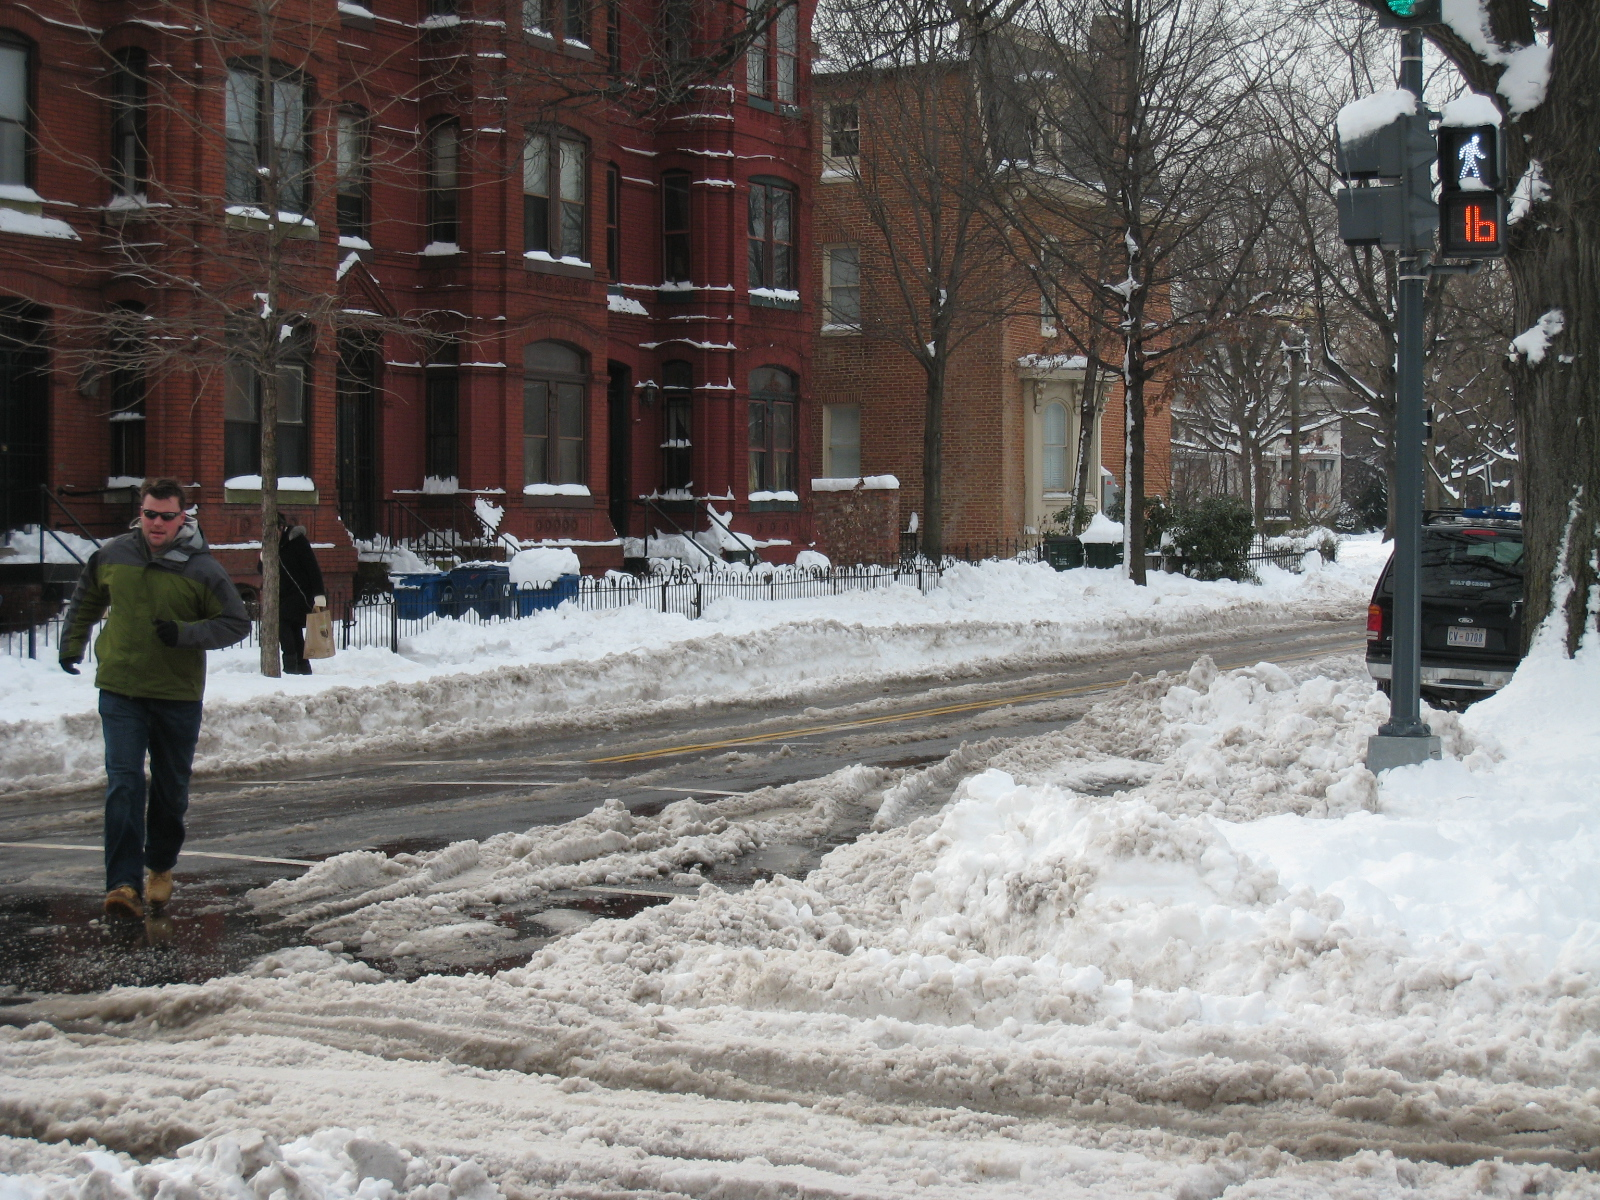 A brave soul navigates around snow drifts in Logan Circle, two days after snow stopped falling in Washington, D.C. Photo by Erica Schlaikjer.